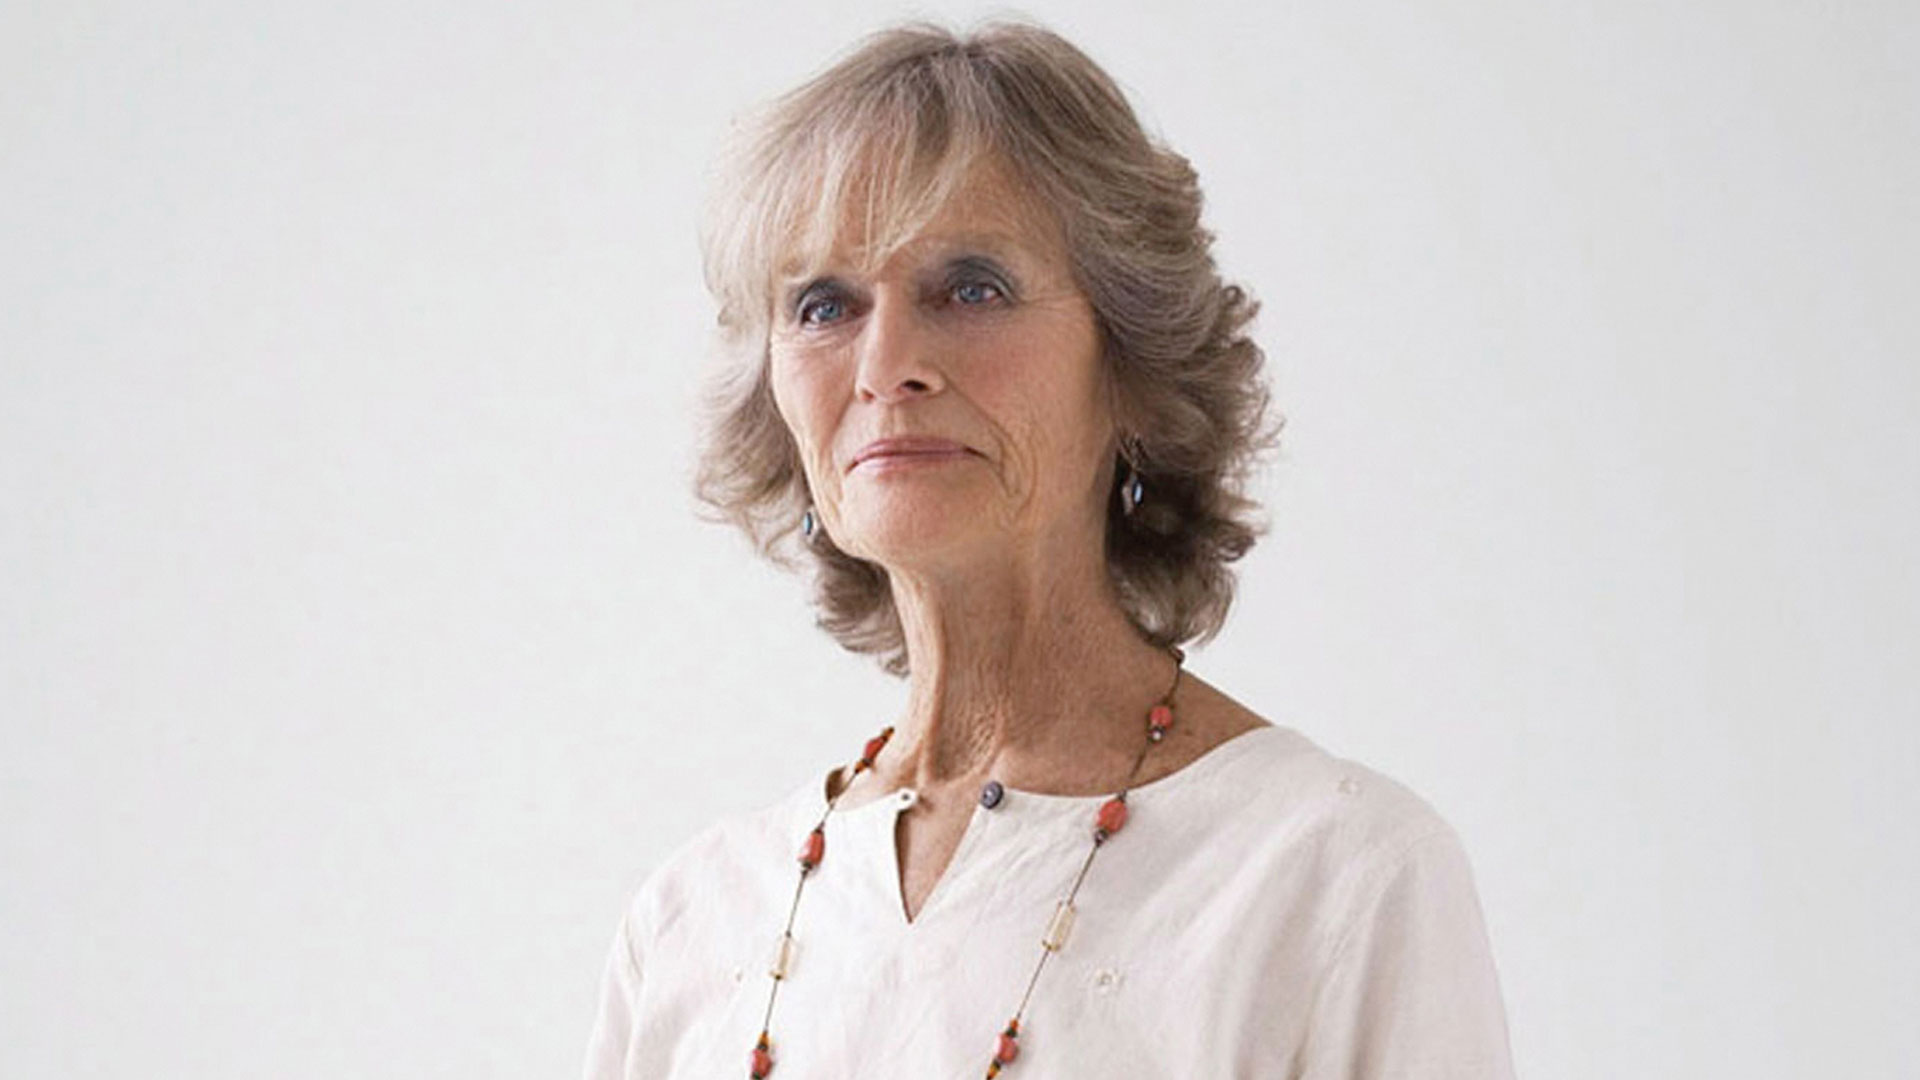 virginia mckenna images